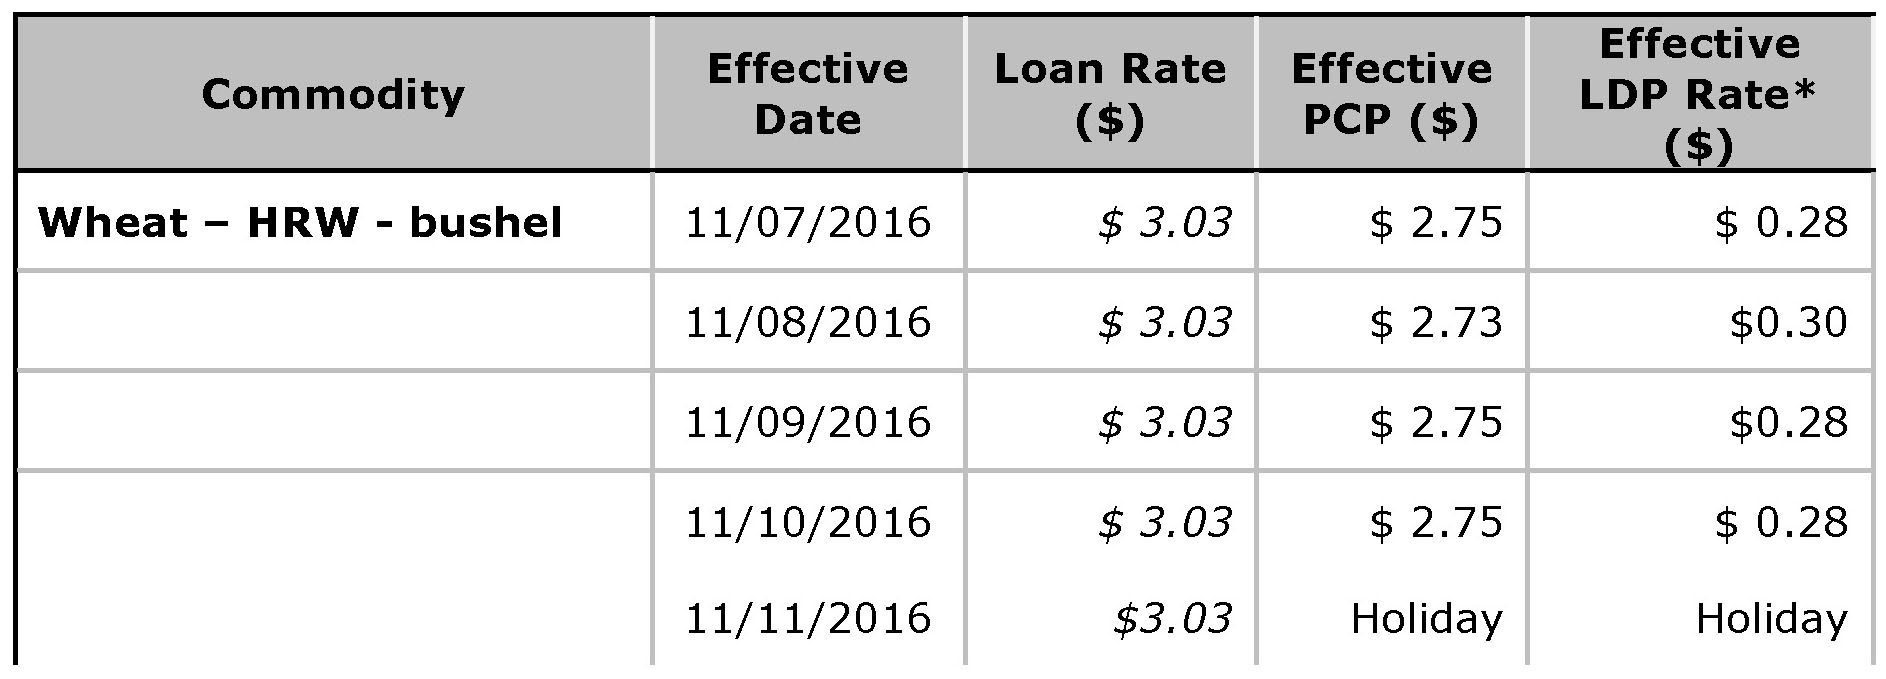 USDA Loan Deficiency Payment - November 11, 2016 - wheat